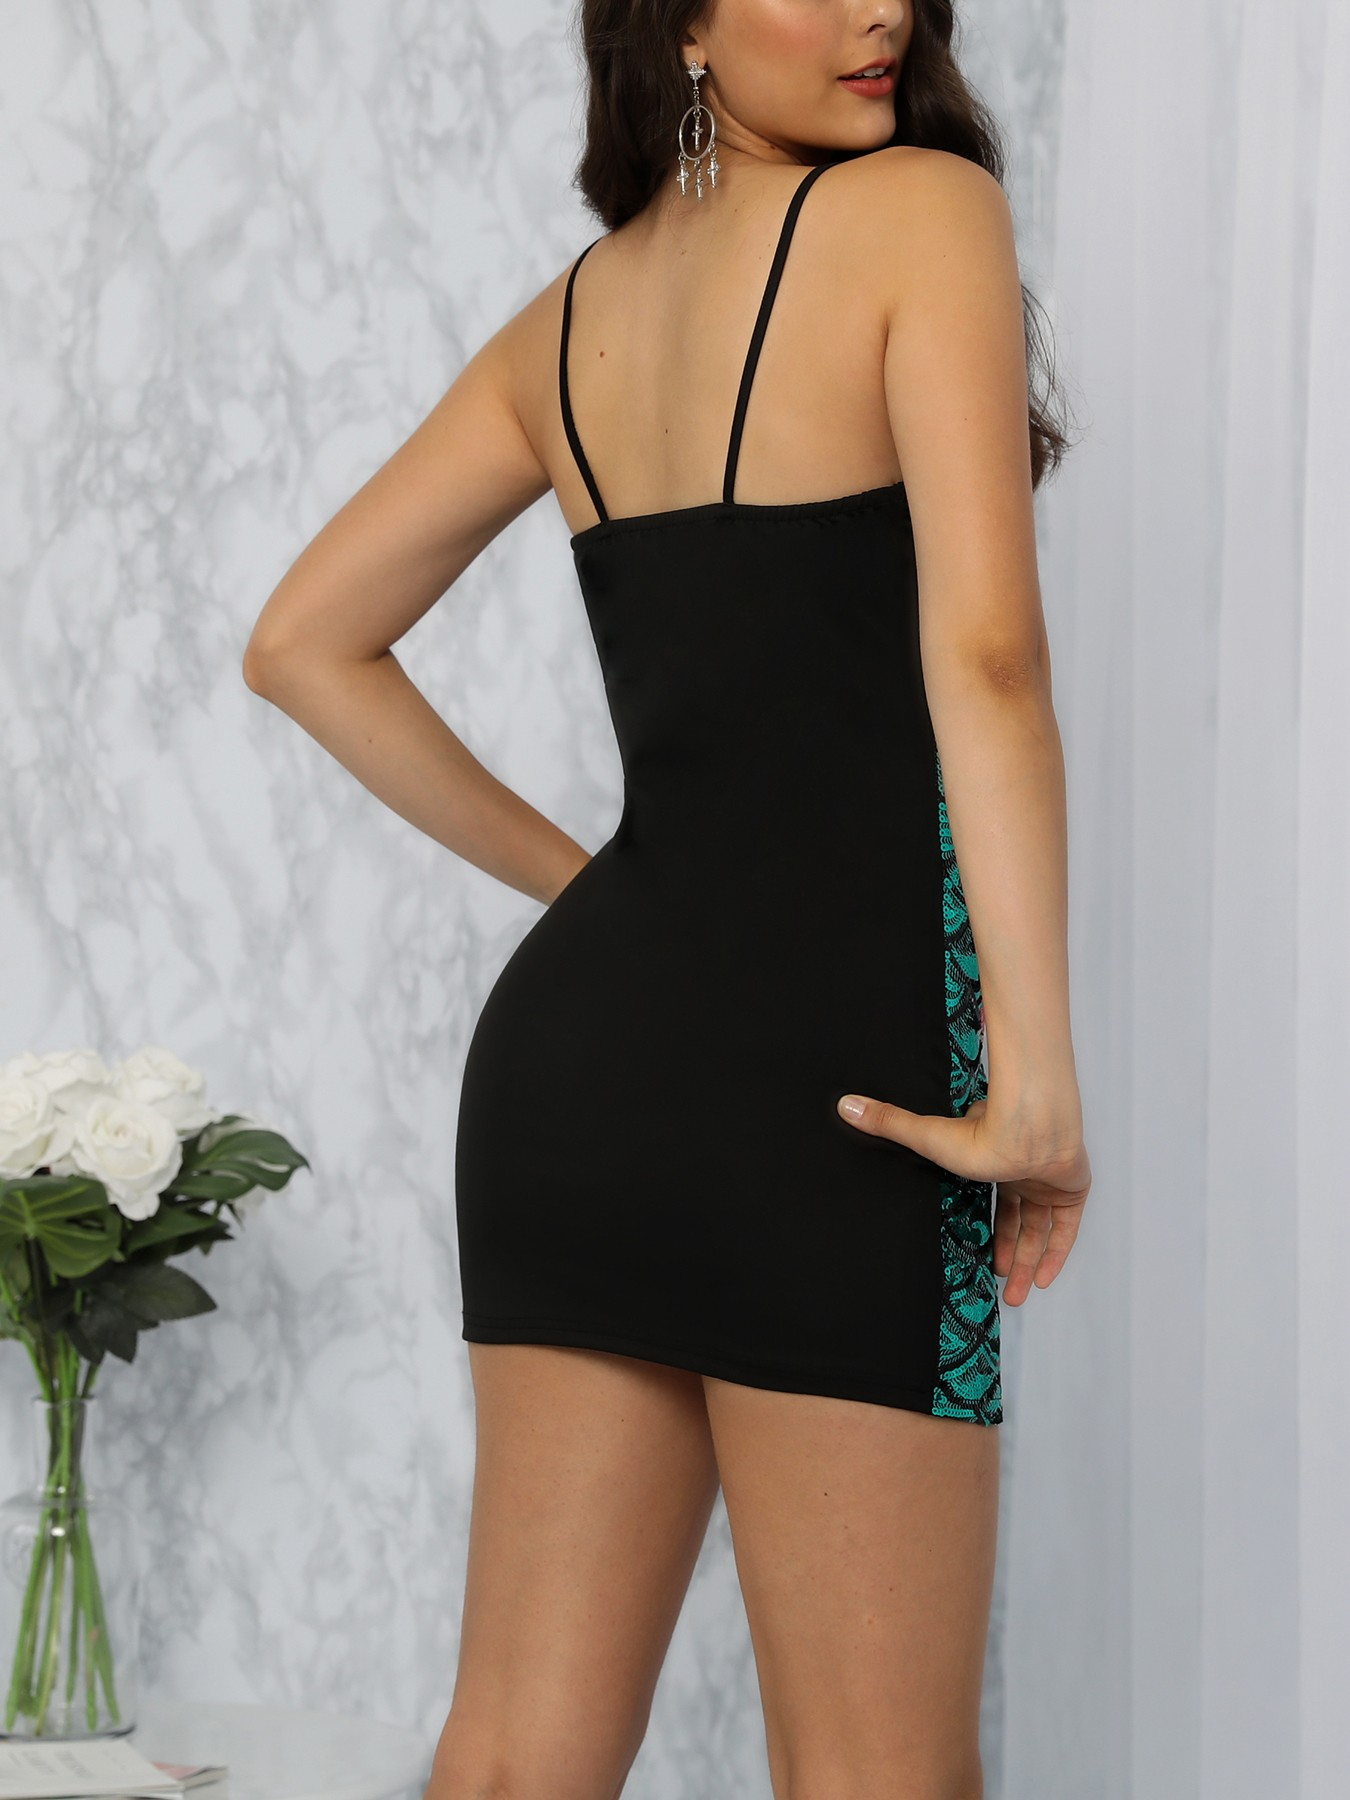 boutiquefeel / Mermaid Sequins Deep V Bodycon Dress